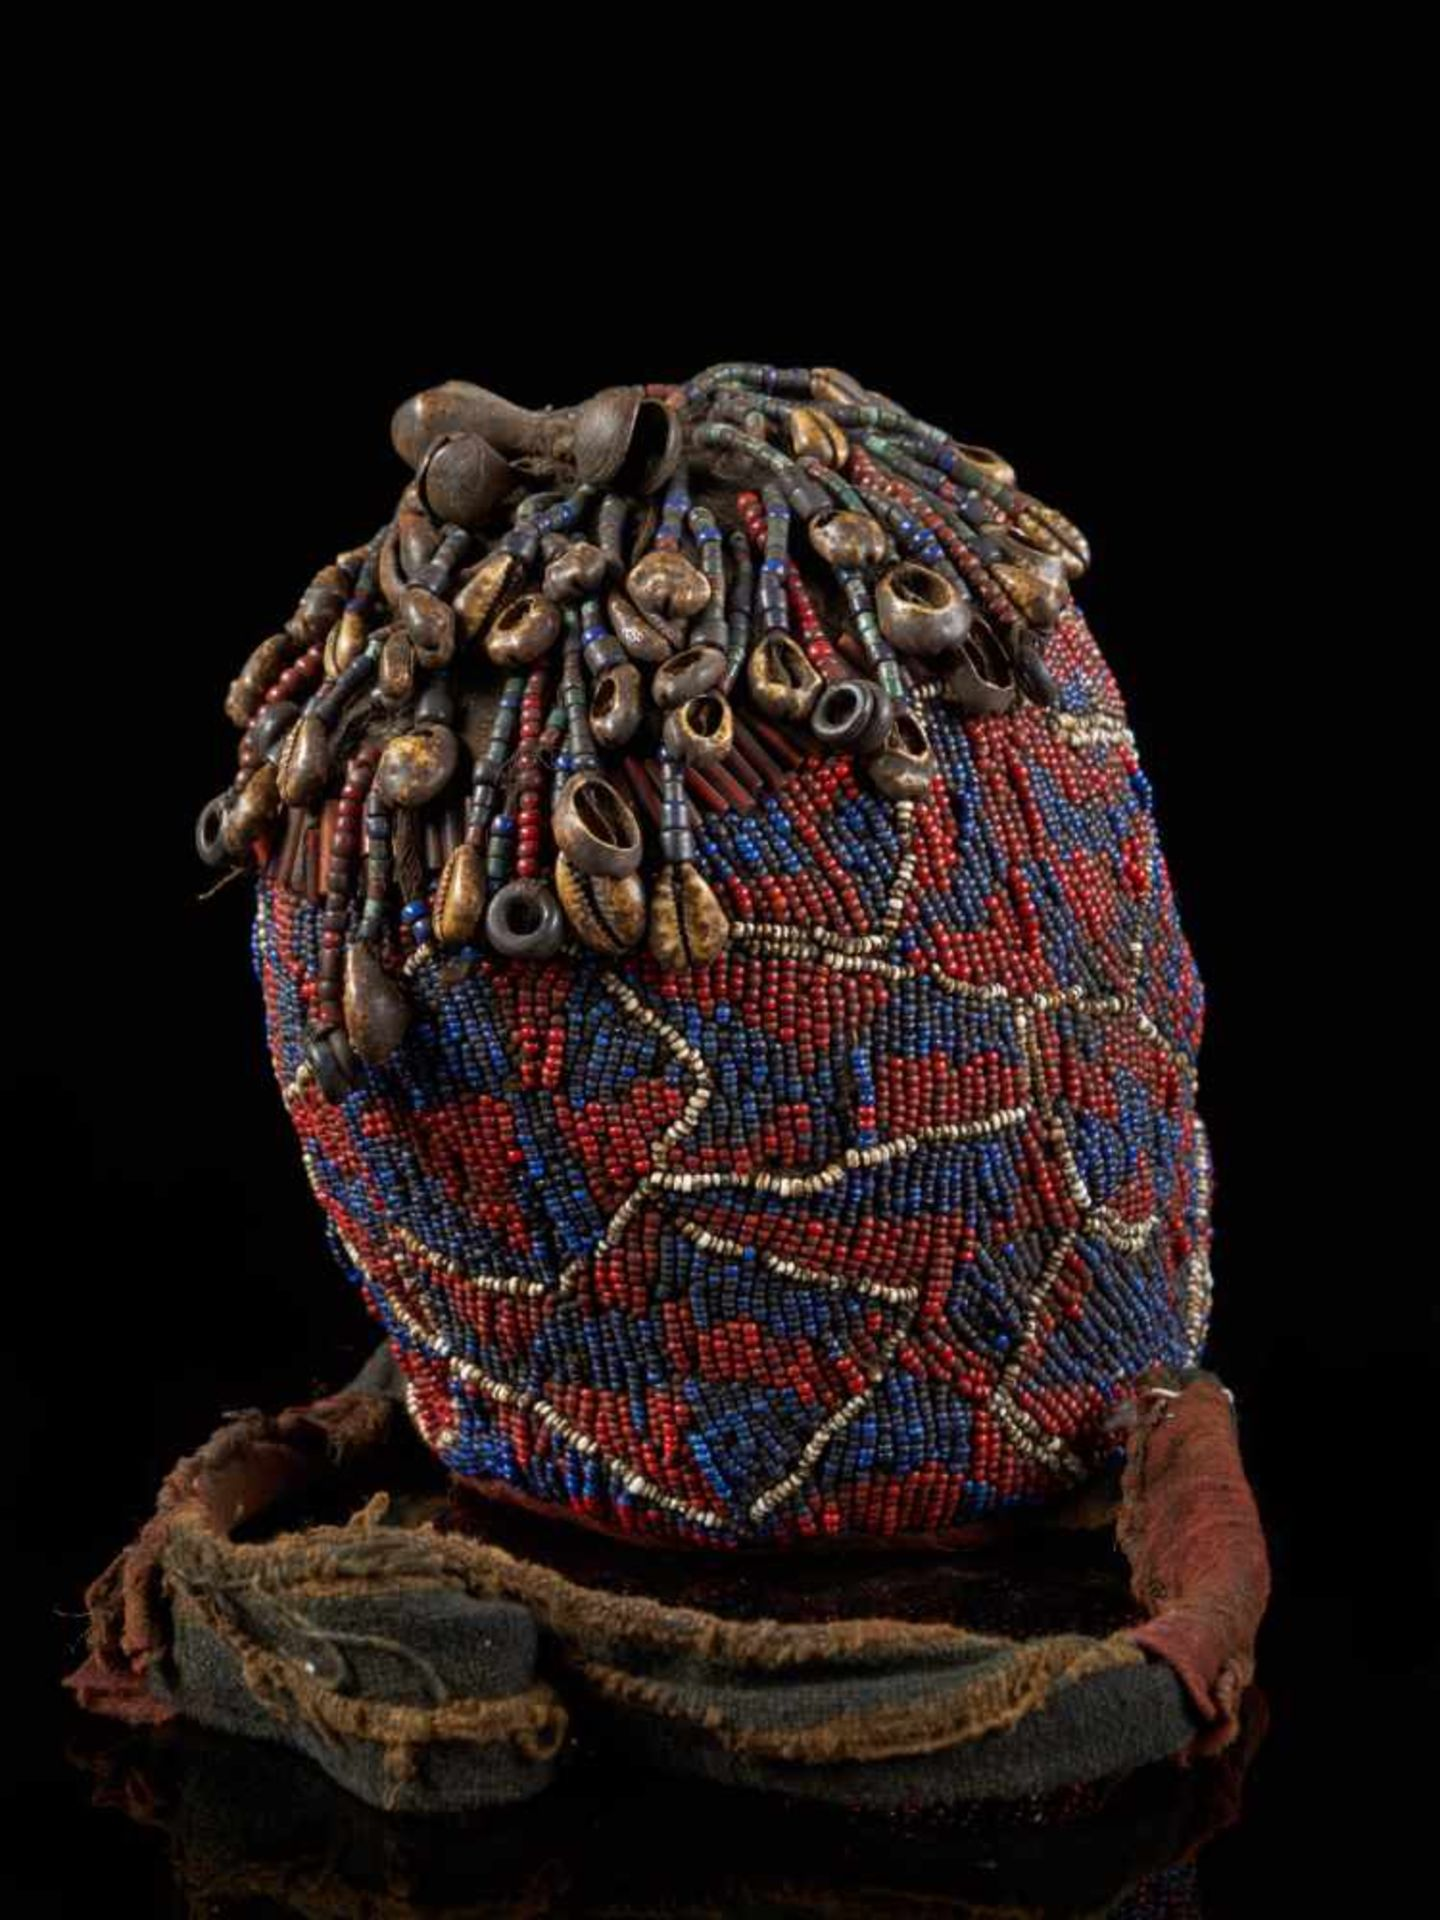 "Beaded Ceremonial Head ""Adwonzen"", Grassland People, Cameroon - Tribal ArtBeaded heads such as this, - Bild 5 aus 6"